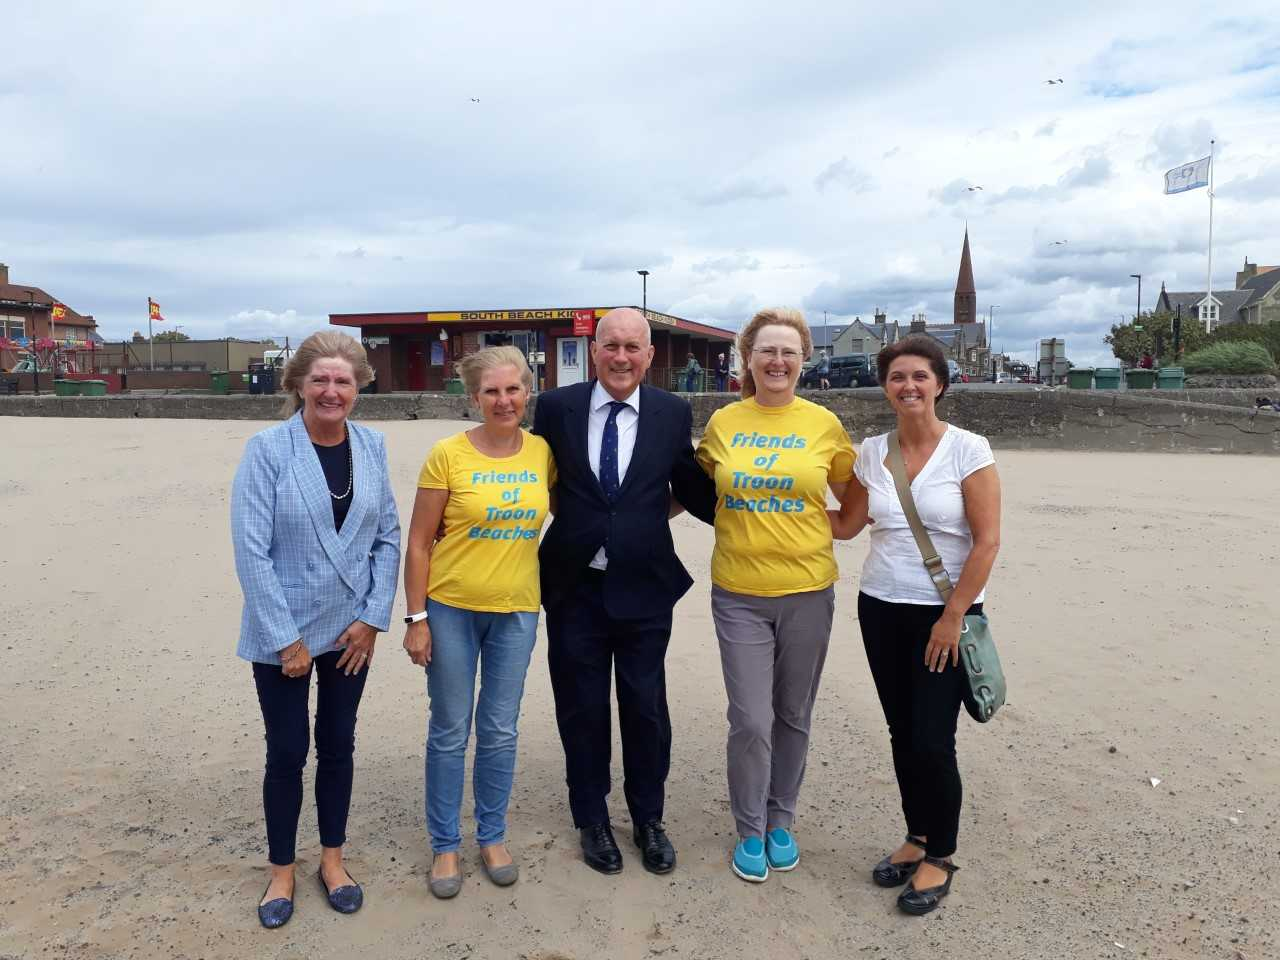 MP hails growth of Troon as he meets with community groups